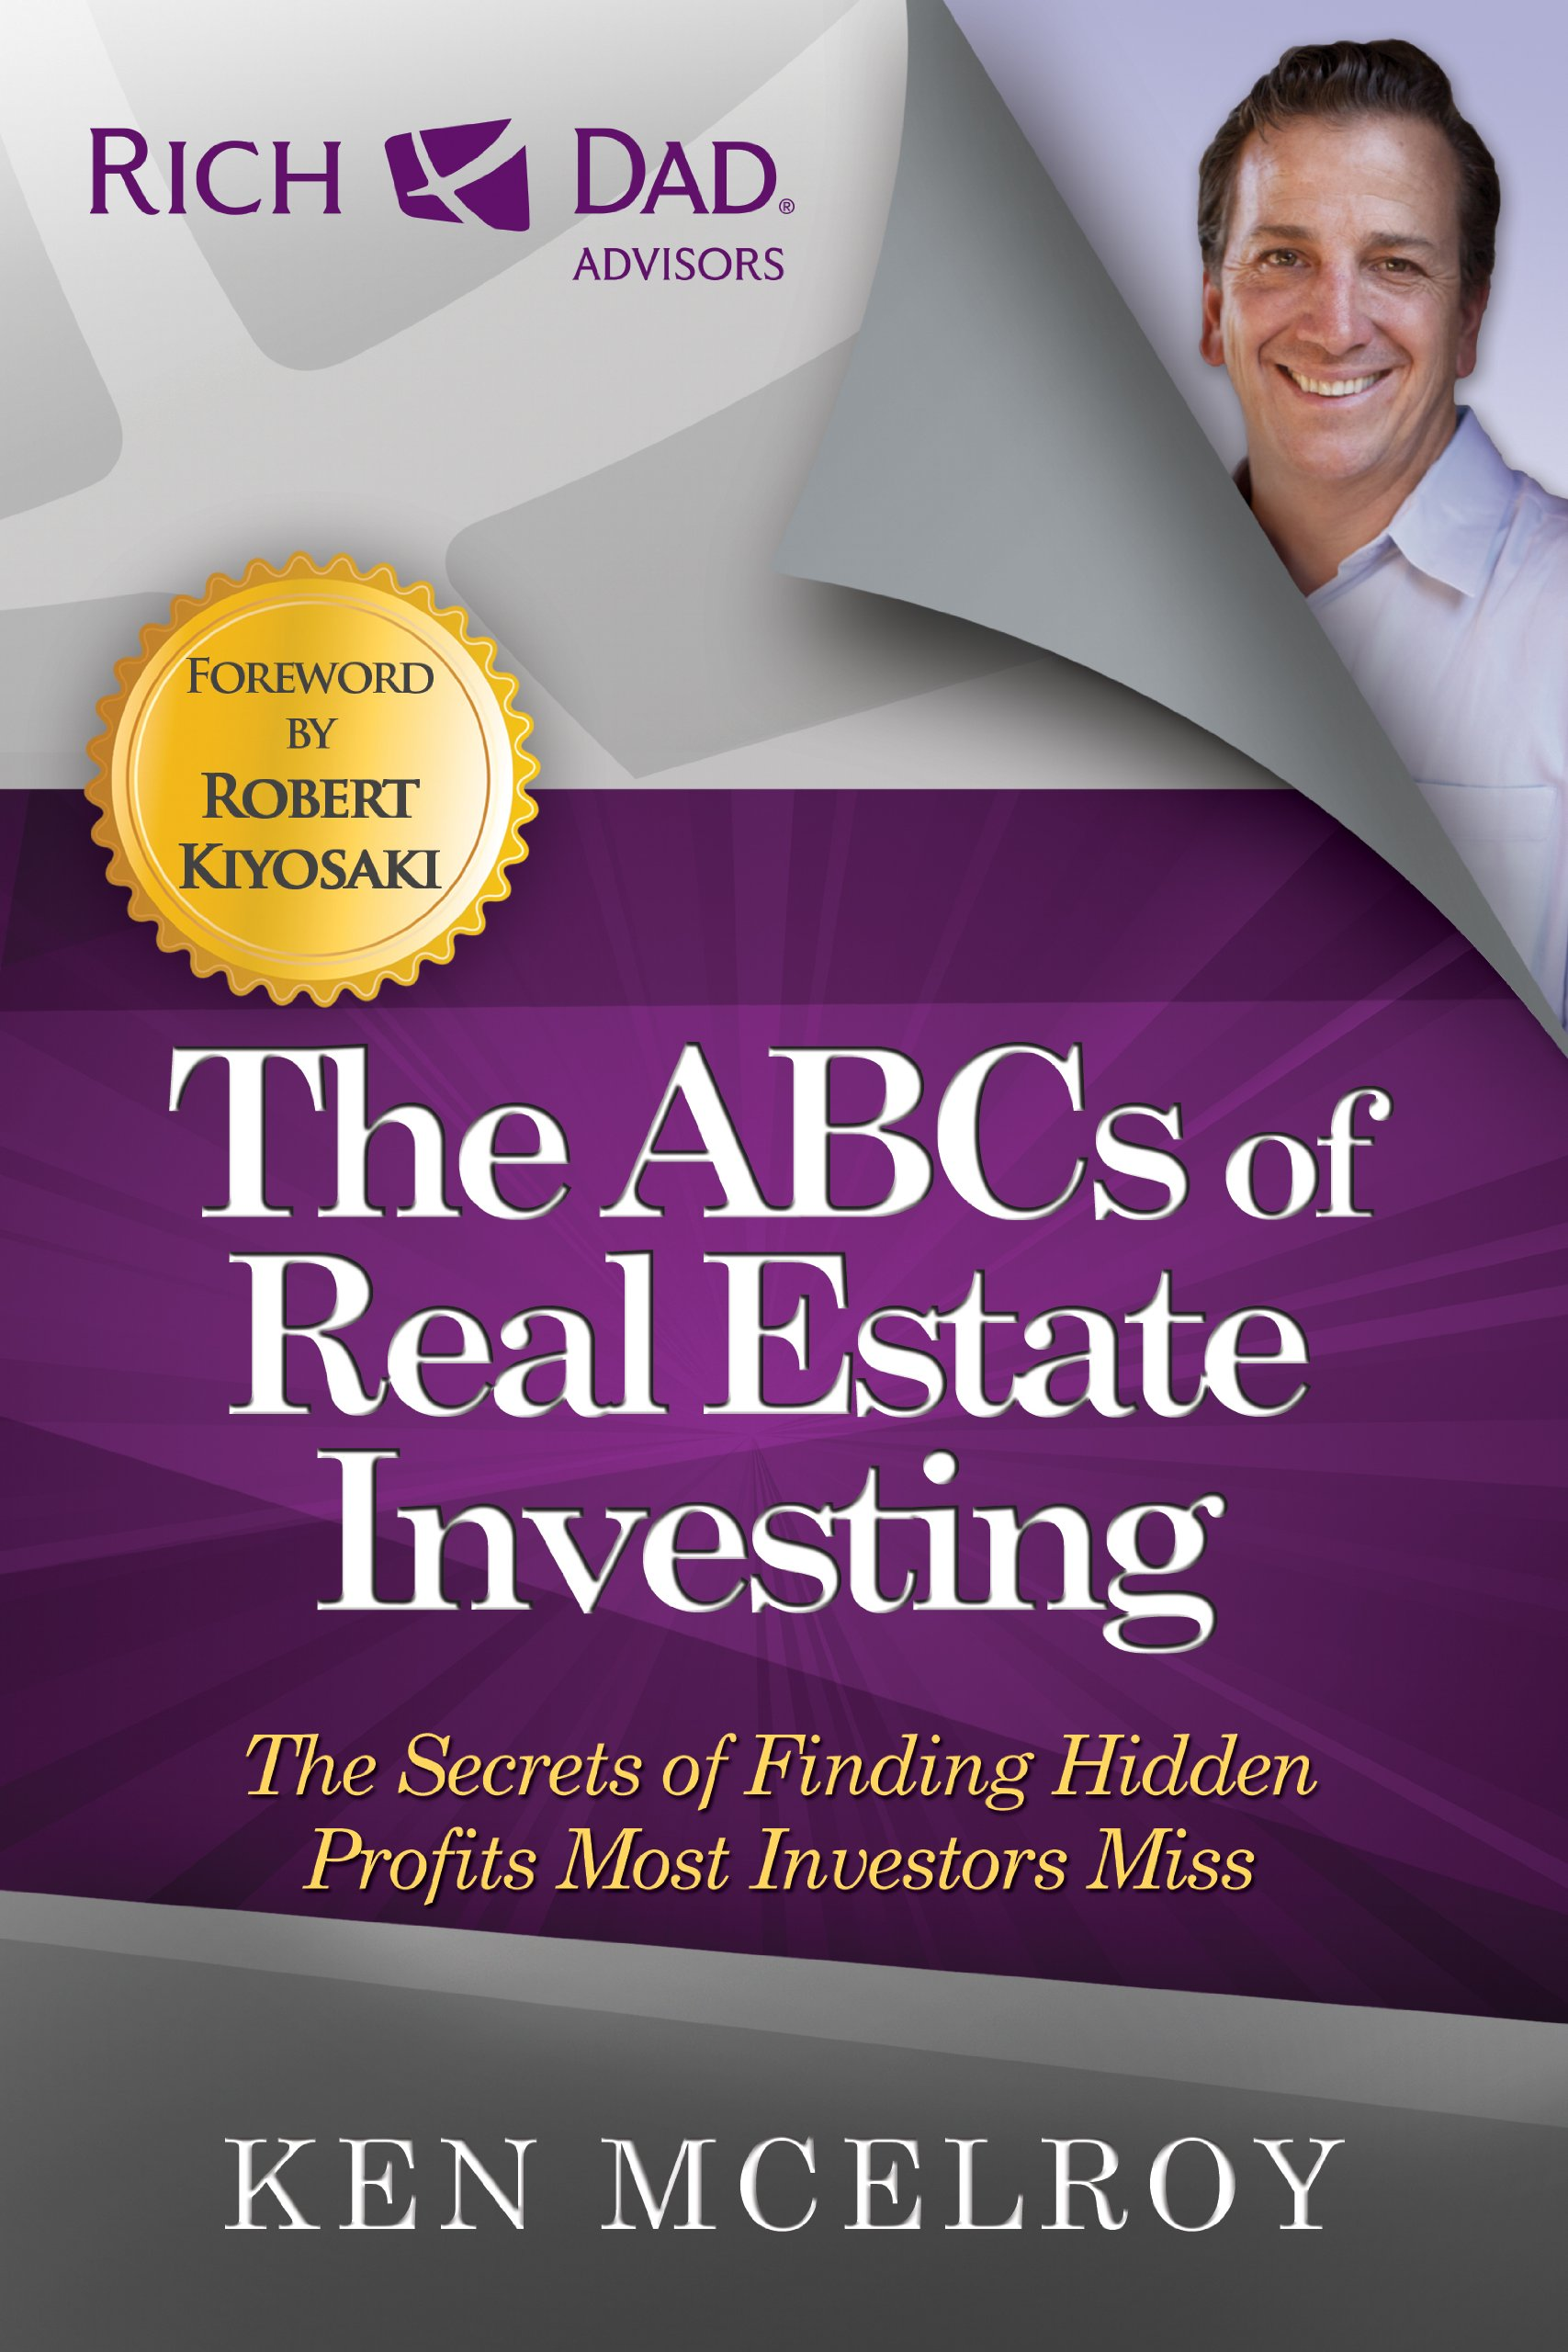 The ABCs of Real Estate Investing: The Secrets of Finding Hidden Profits Most Investors Miss (Rich Dad's Advisors (Paperback)) by RDA Press, LLC